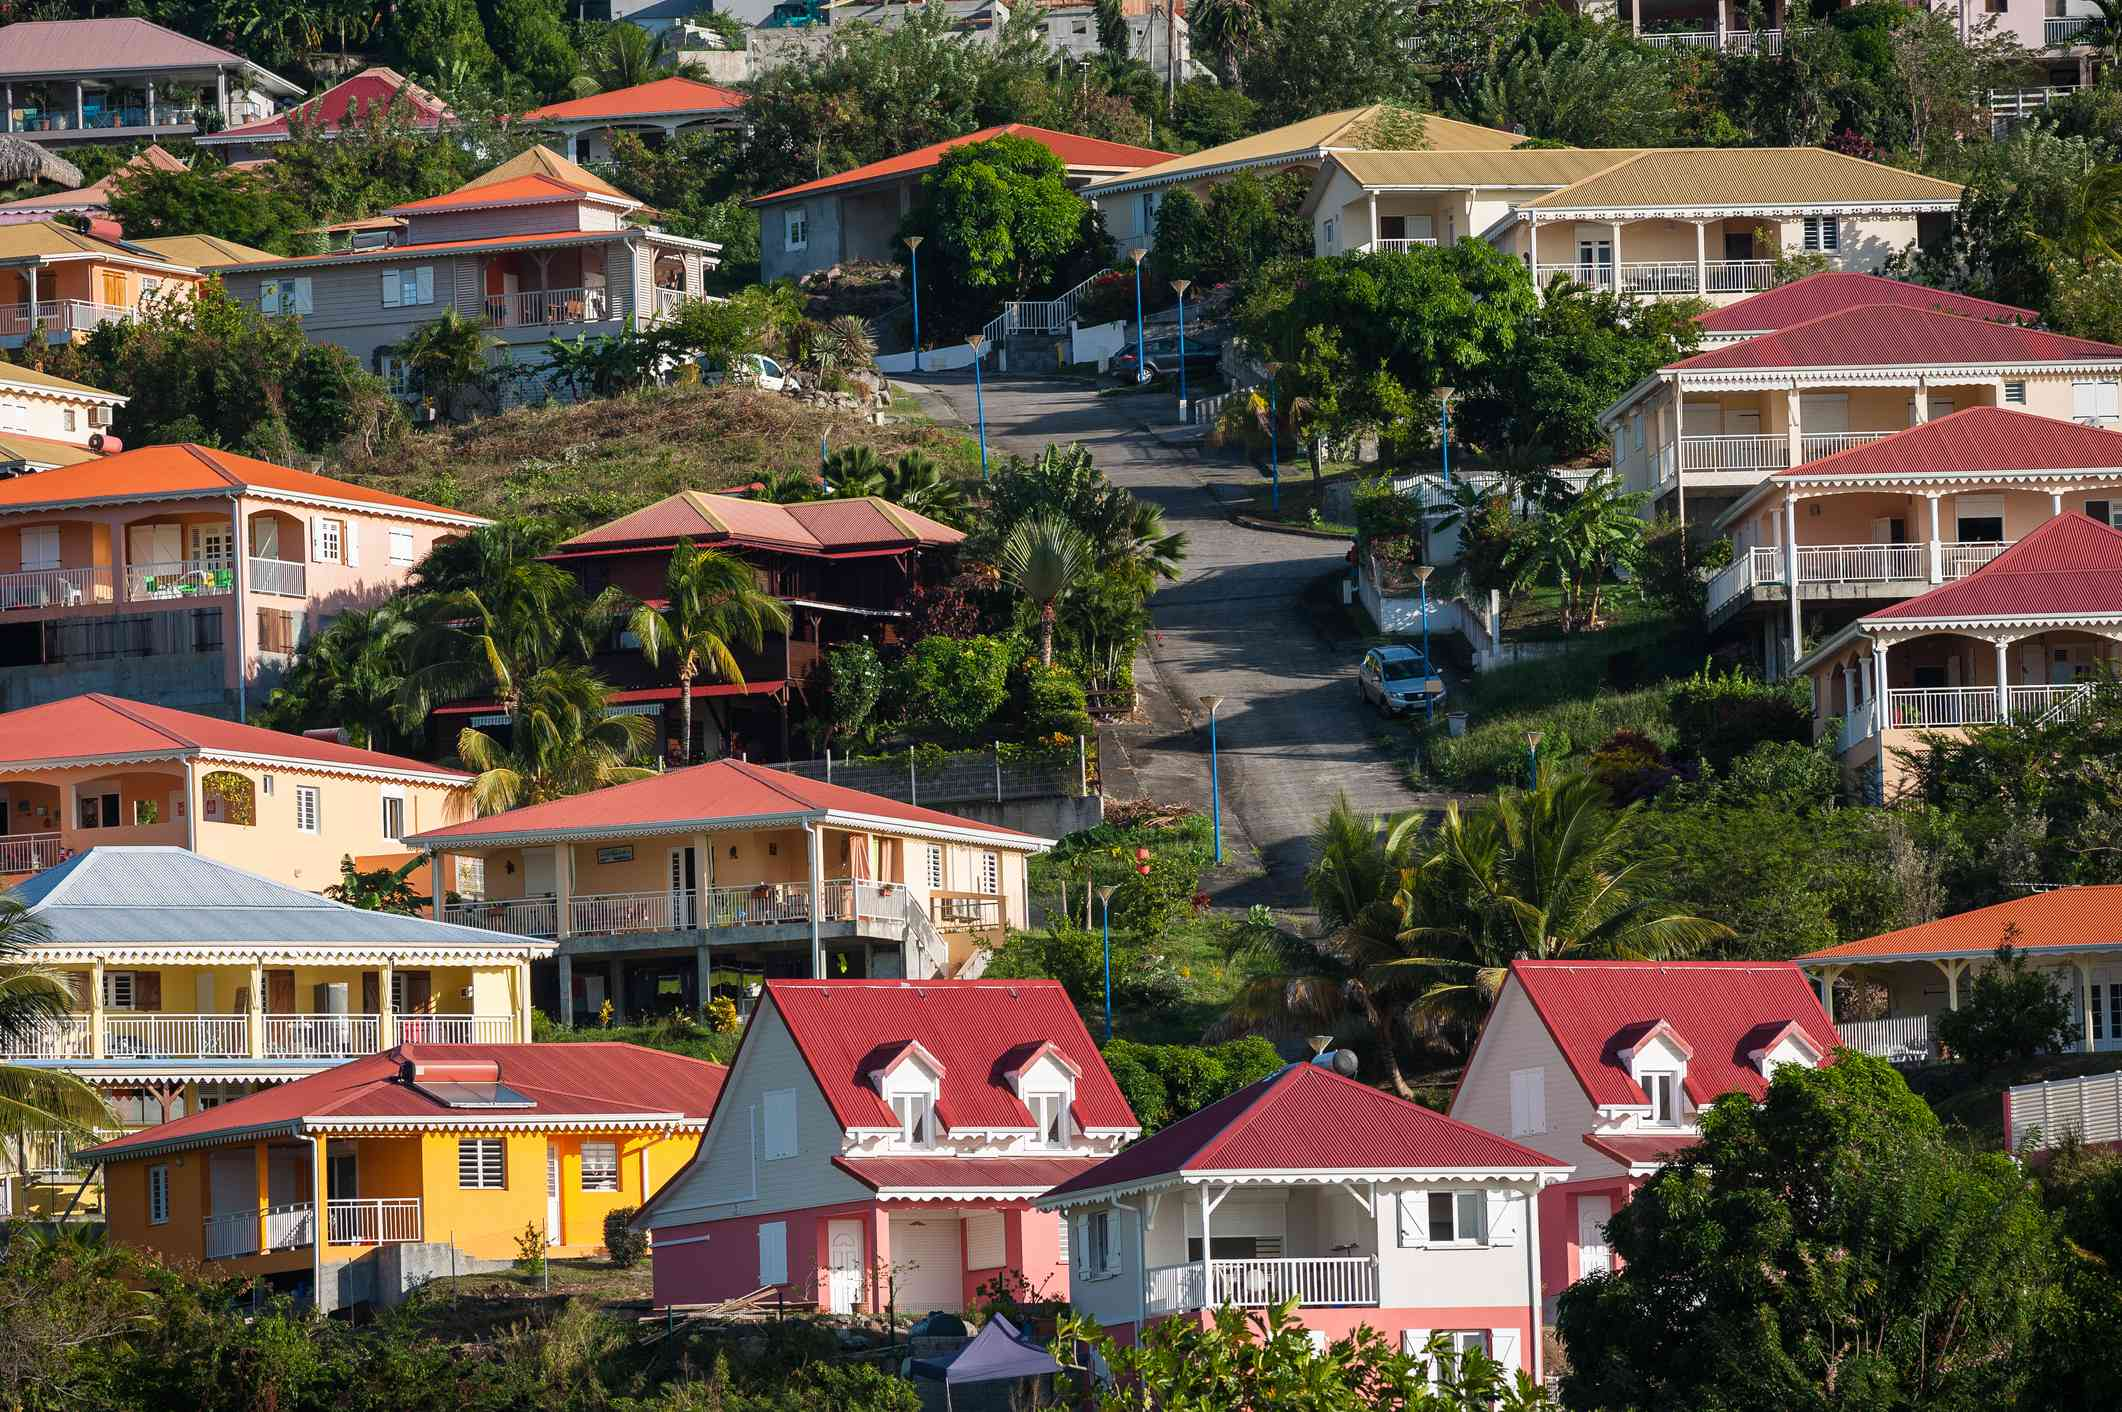 houses with colorfooves on a hill in martinique